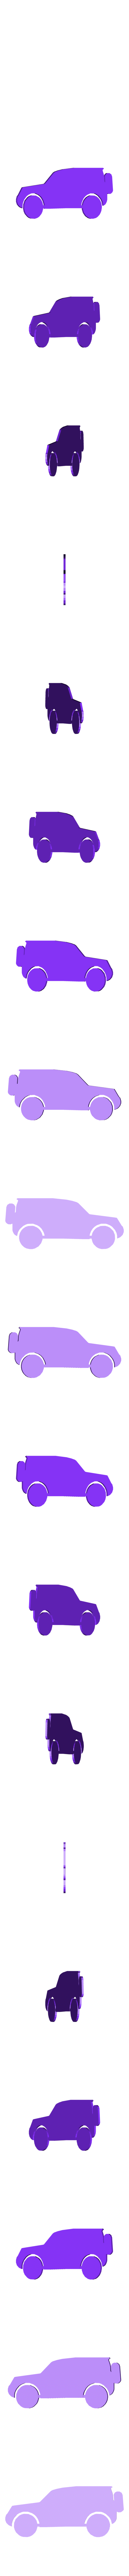 voiture.stl Download STL file mouse hole and these accessories • 3D printer model, catf3d